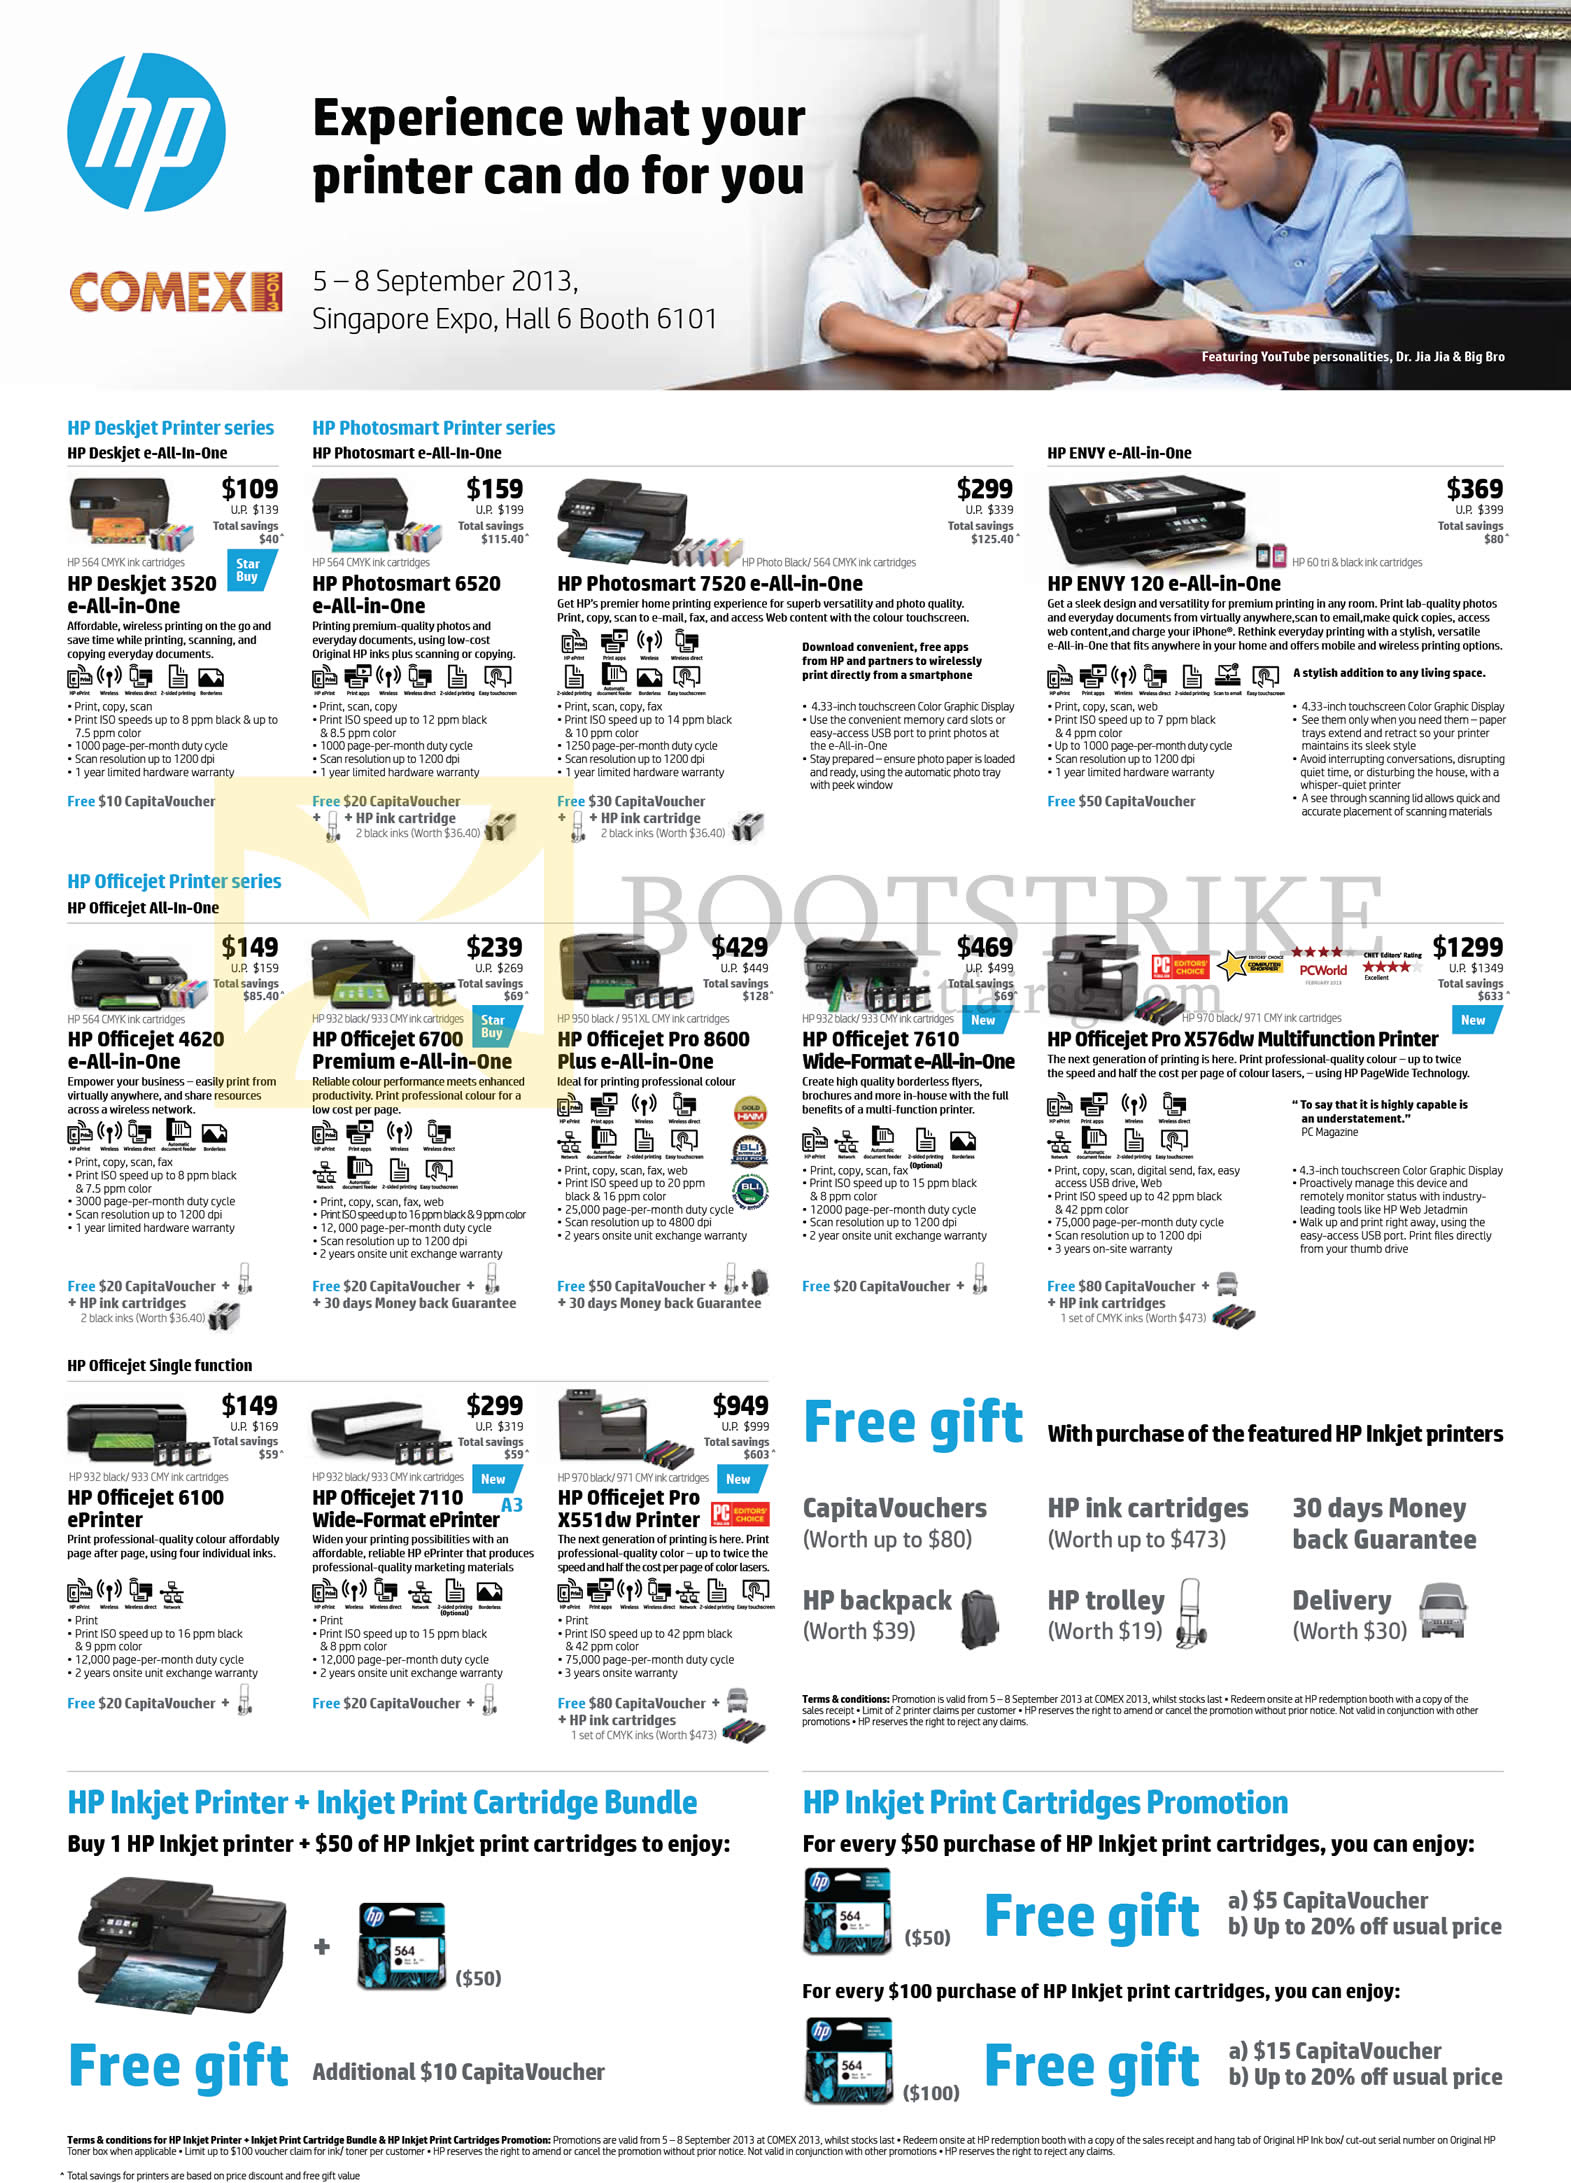 EX 2013 price list image brochure of HP Printers Deskjet 3520 smart 6520 7520